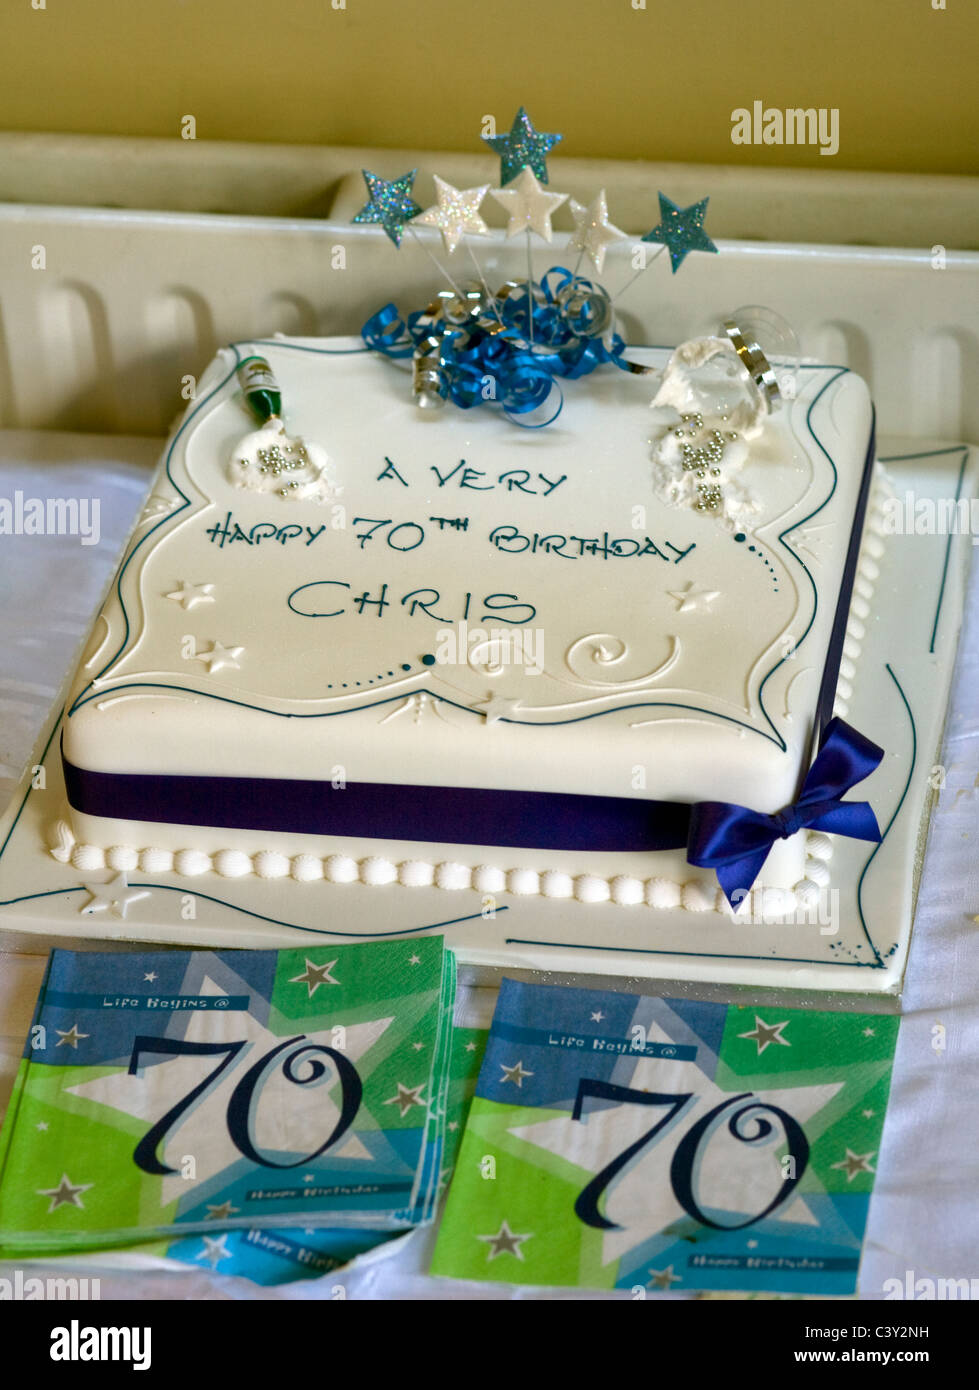 Astonishing Birthday Cake With White Icing And Ribbon For 70Th Birthday Of Personalised Birthday Cards Sponlily Jamesorg